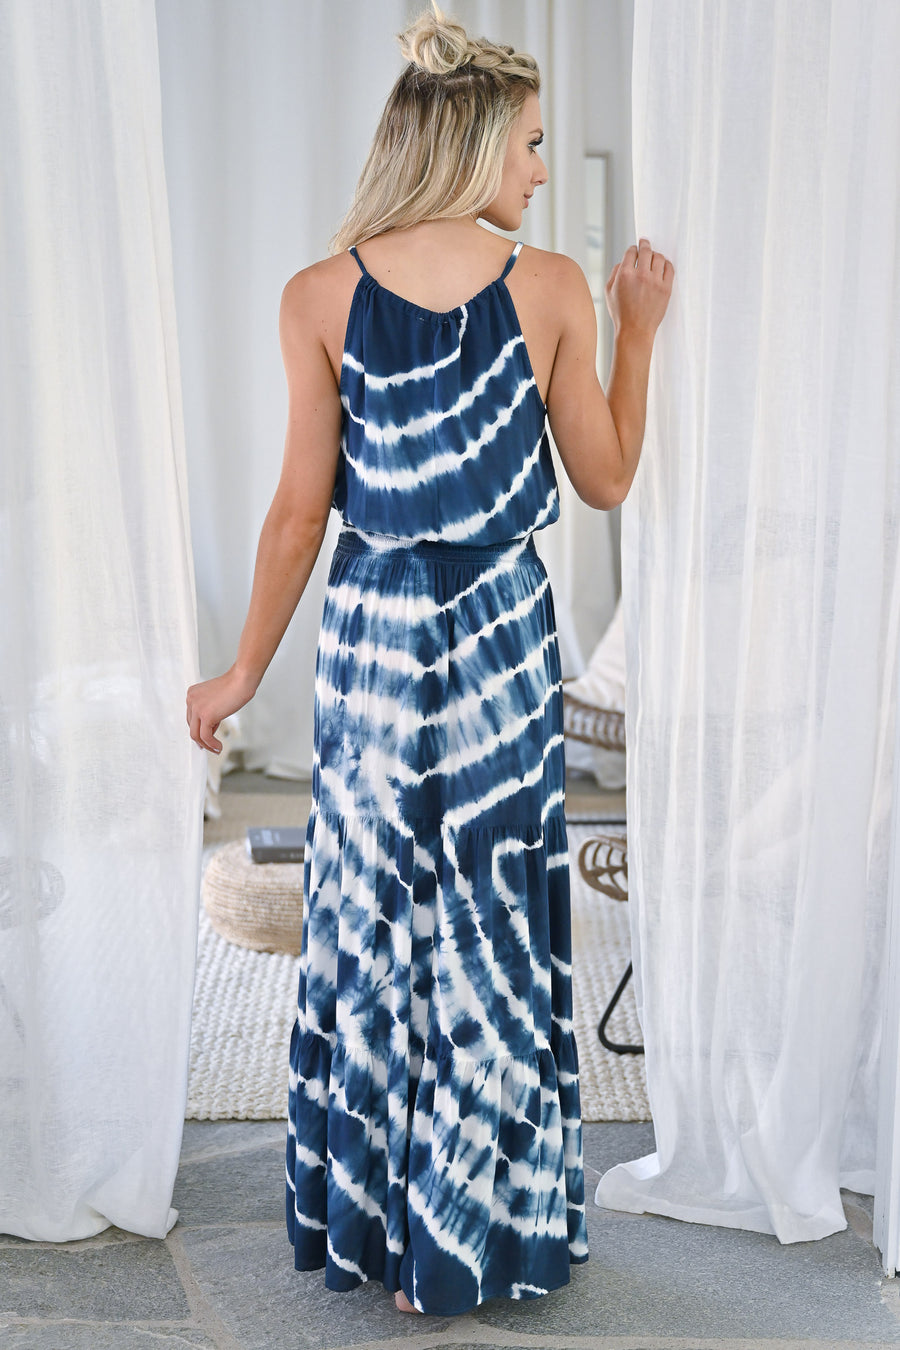 So Many Places To Go Maxi Dress - Navy womens trendy long tie dye dress closet candy front2